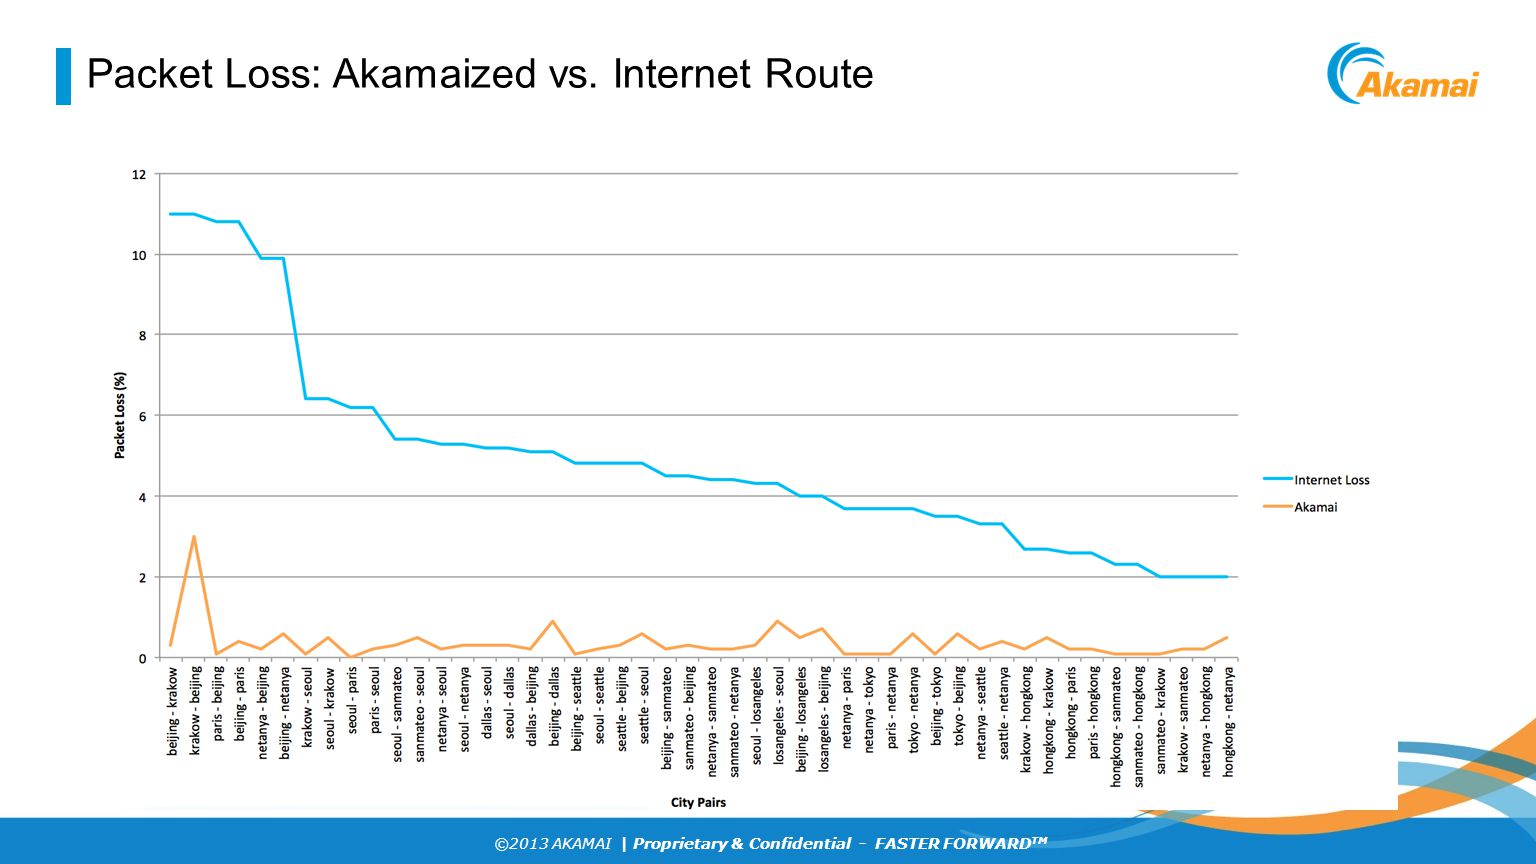 Packet Loss: Akamaized vs. Internet Route